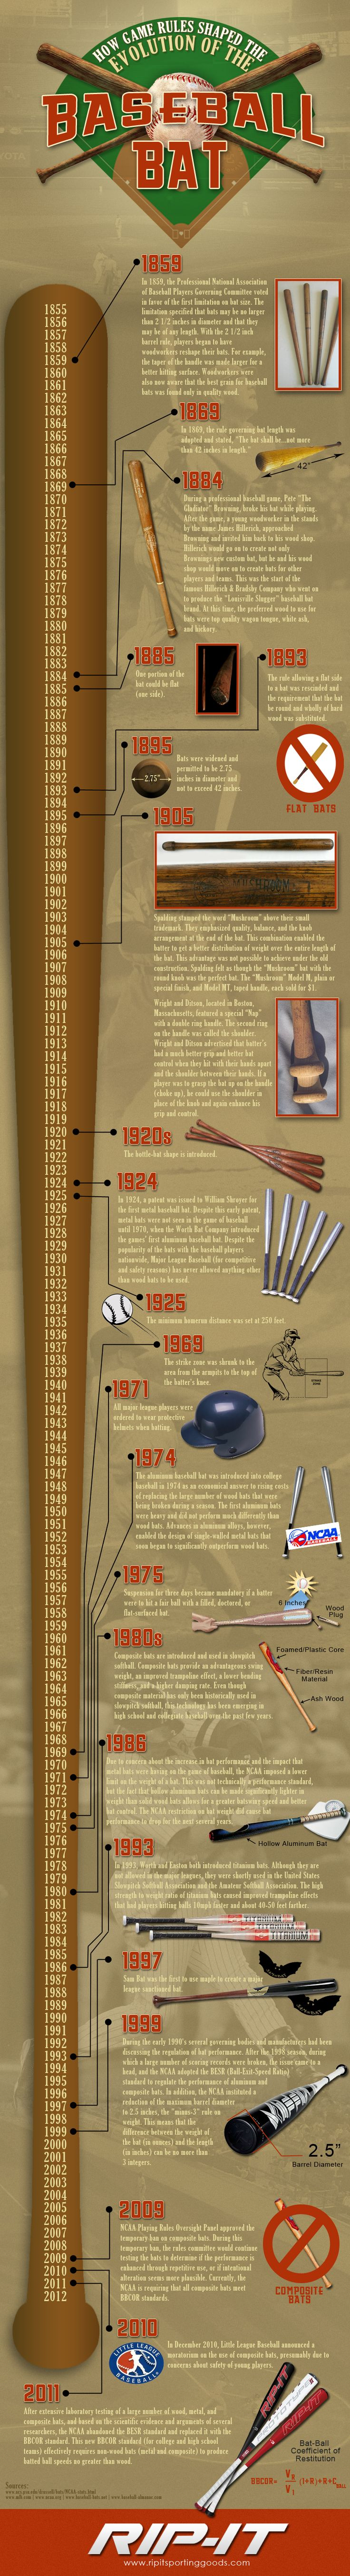 Checkout this amazing infographic on the history of a baseball bat!